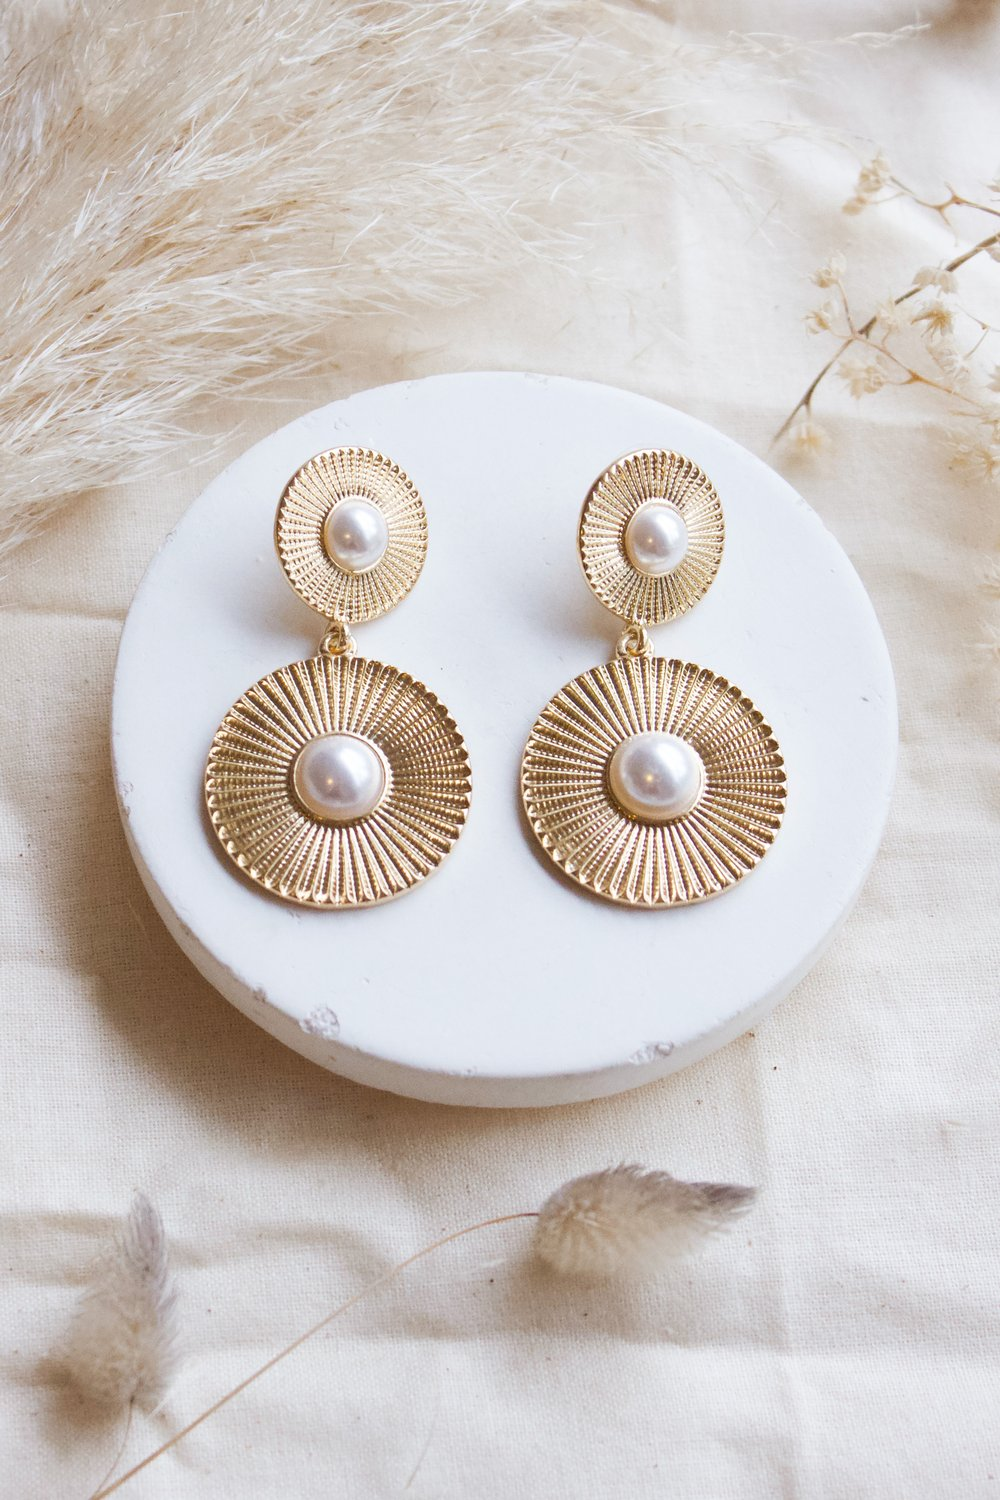 The Sota Collective Ottilia Earring - Sooki Boutique